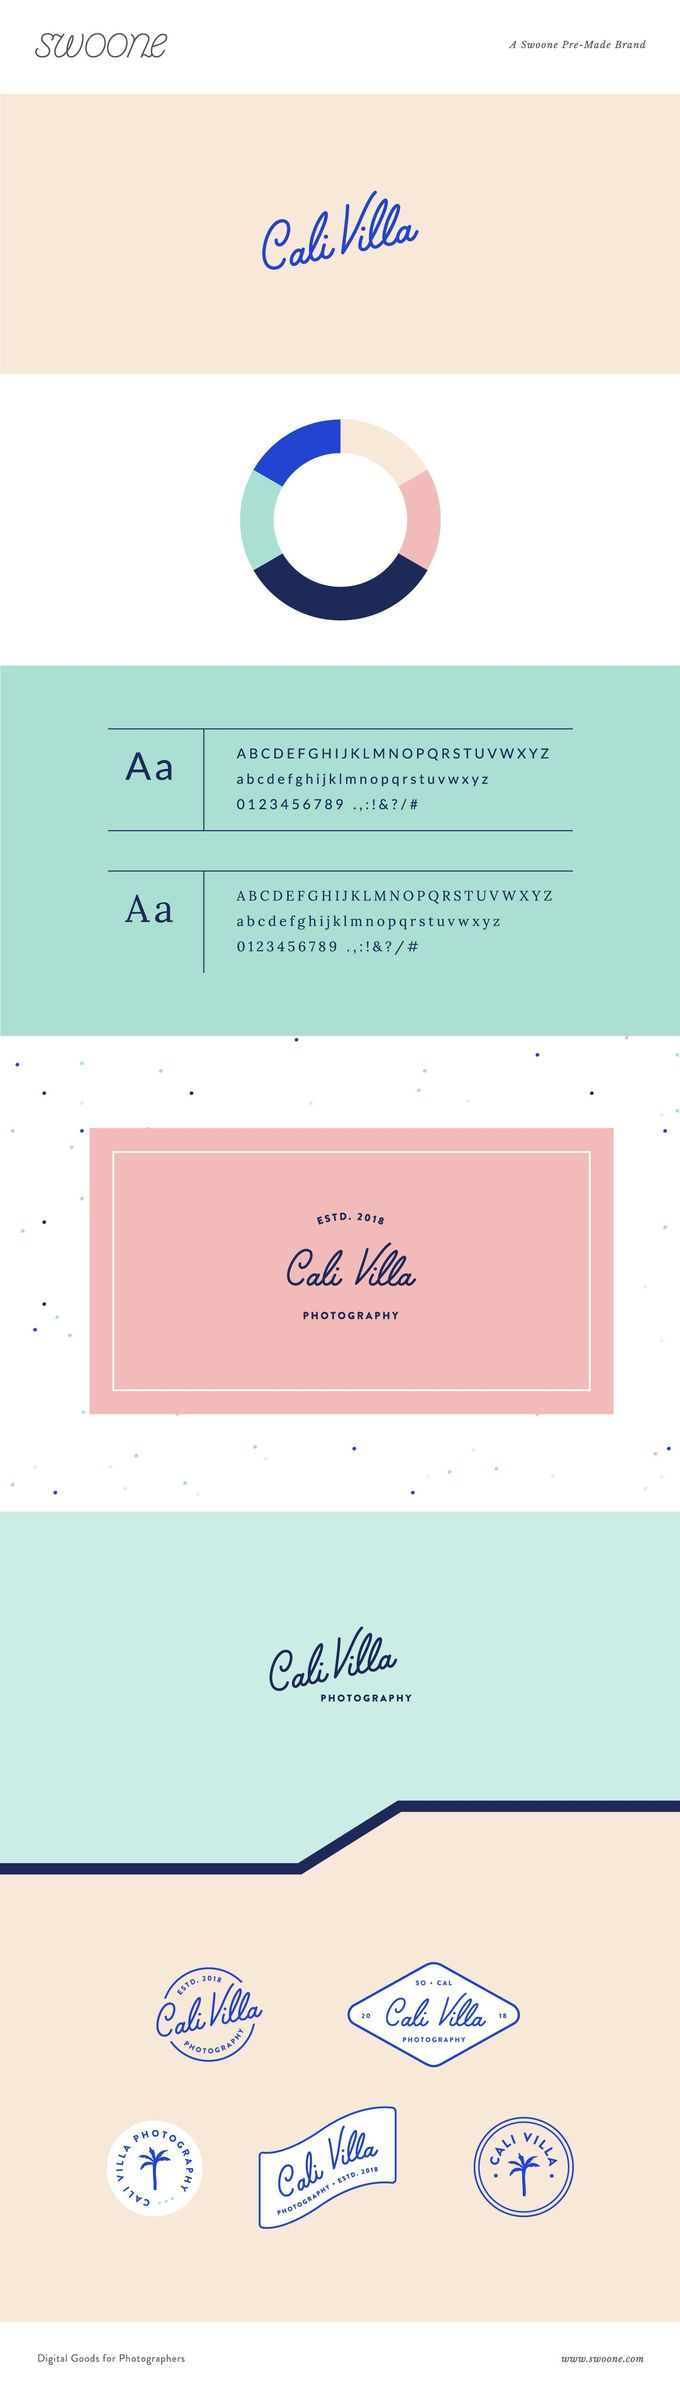 Sprinkle some personality into your brand with Cali Villa. Featuring a monoline script, lively color palette, and fun coastal illustrations, this welcoming brand would be great for any photographer with a fun coastal style and personality   #premadebrands #premadebrandsforphotographers #forphotographers #forphotogs #templatesforphotographers #brand #typography #modern #branding #logo #logodesign #logoforphotographer #photographers #california #sanserif #monoline #monolinescript #coastal #coastal